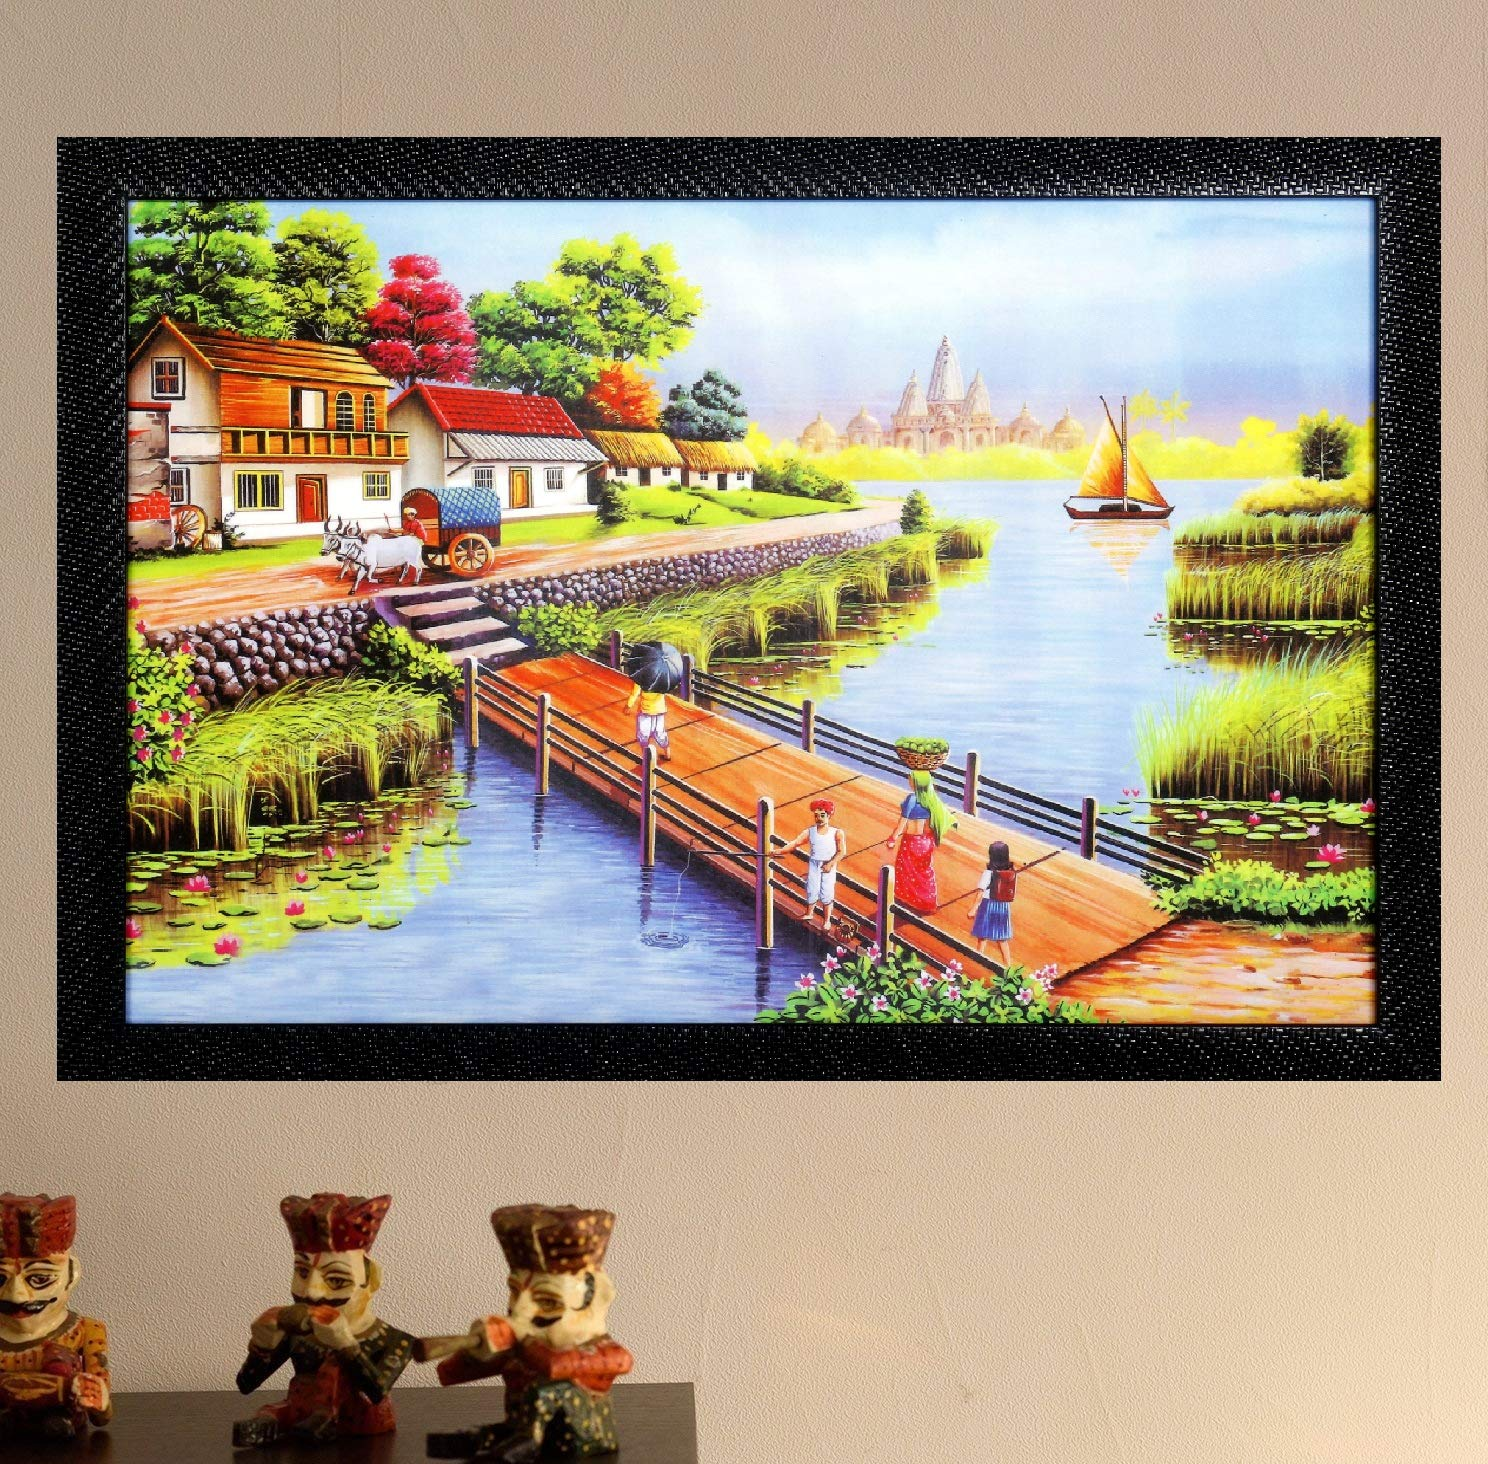 Dmt natural river and village hd printed picture framed wall art painting synthetic without glass 12 x 18 inch amazon in home kitchen